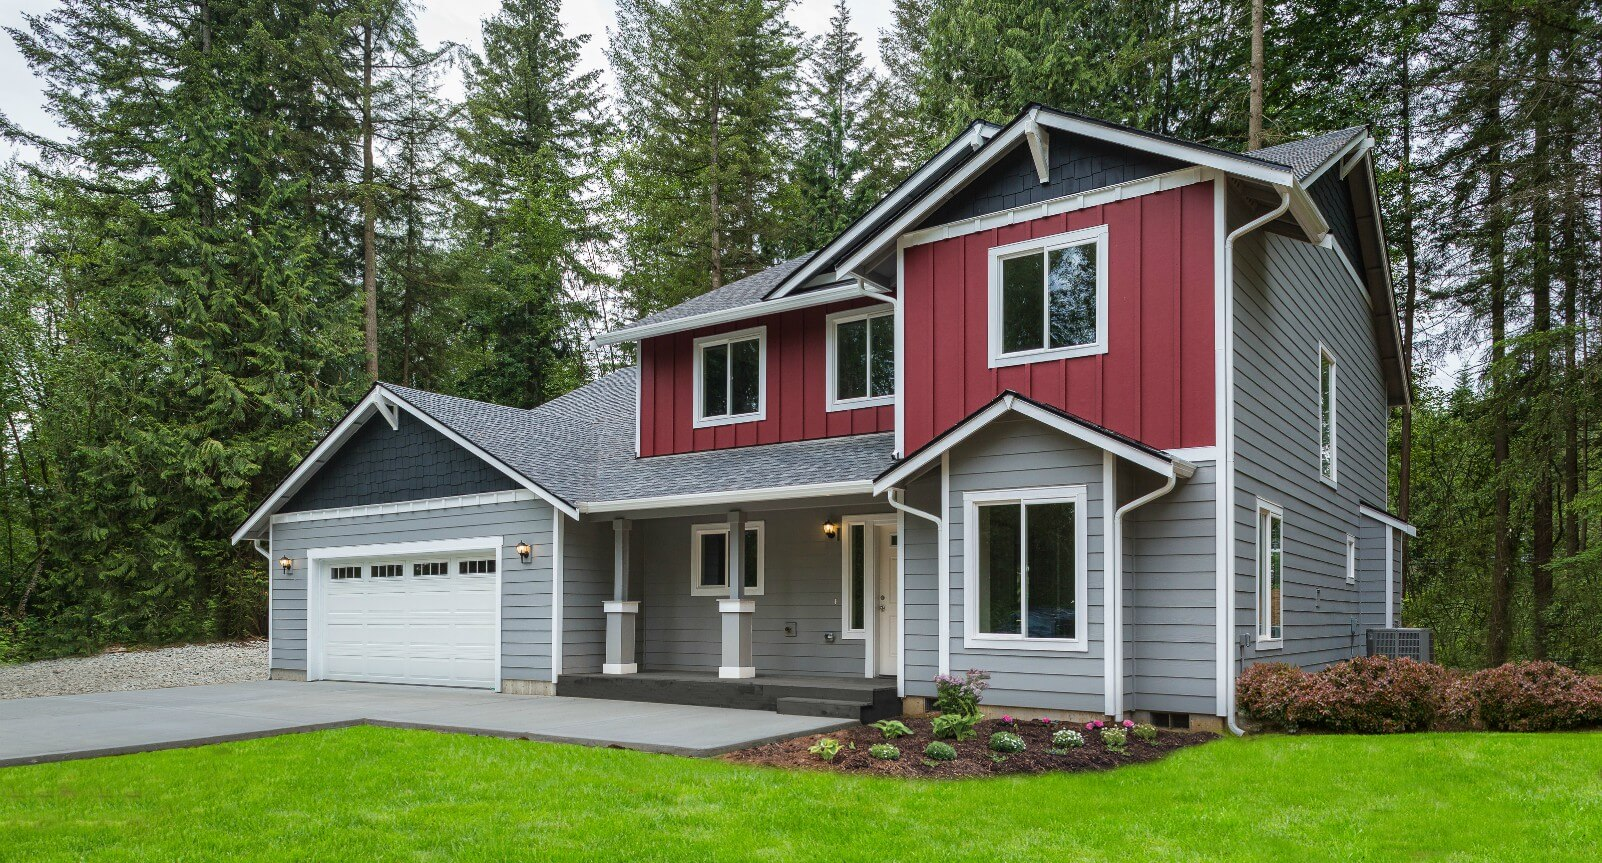 House Siding Options: Choosing The Right Materials For Your Dream Home